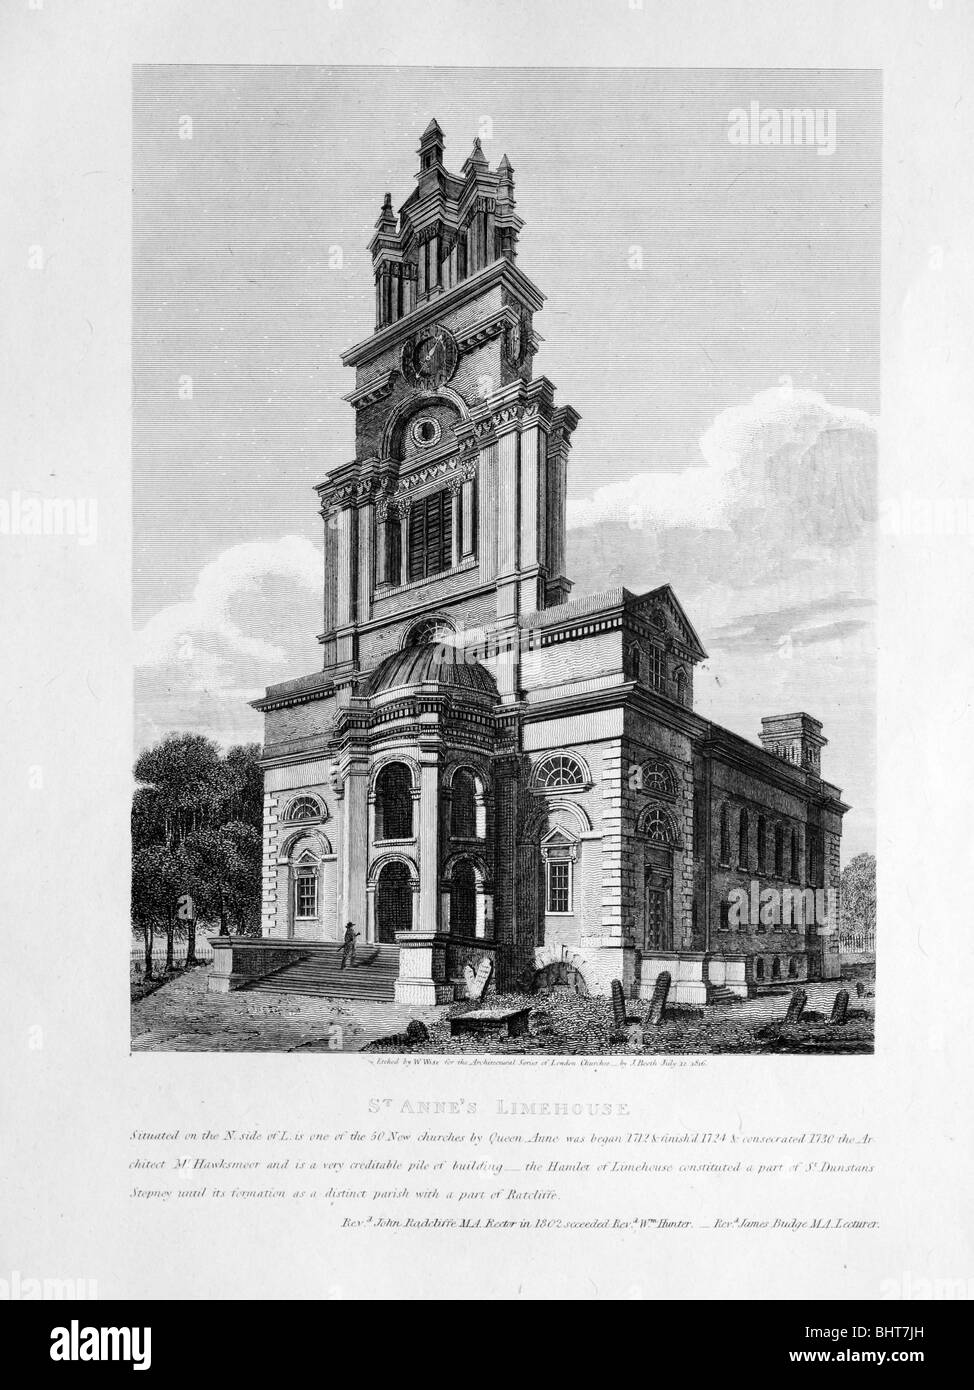 Antique etching of Saint Anne's, Limehouse - Stock Image